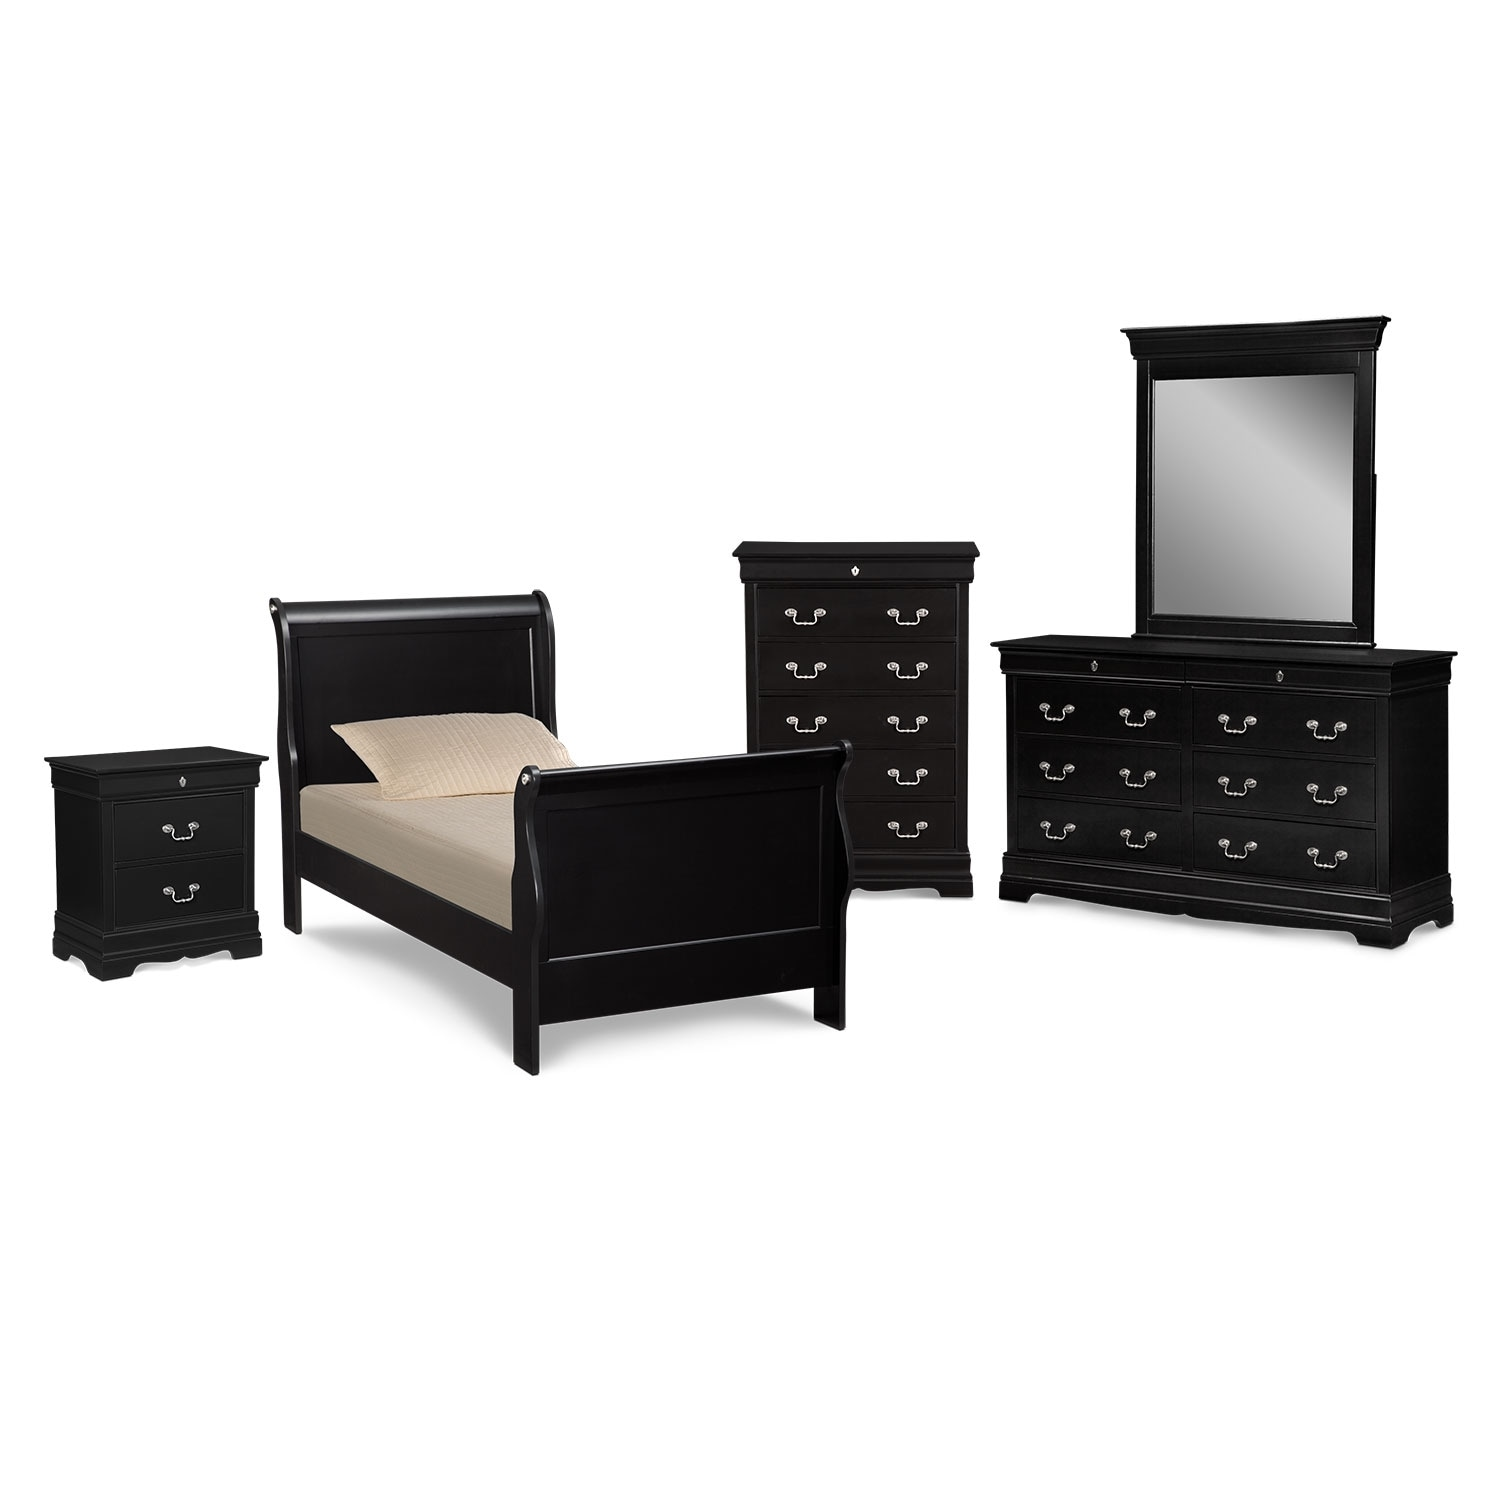 Neo Classic Youth 7-Piece Twin Bedroom Set - Black